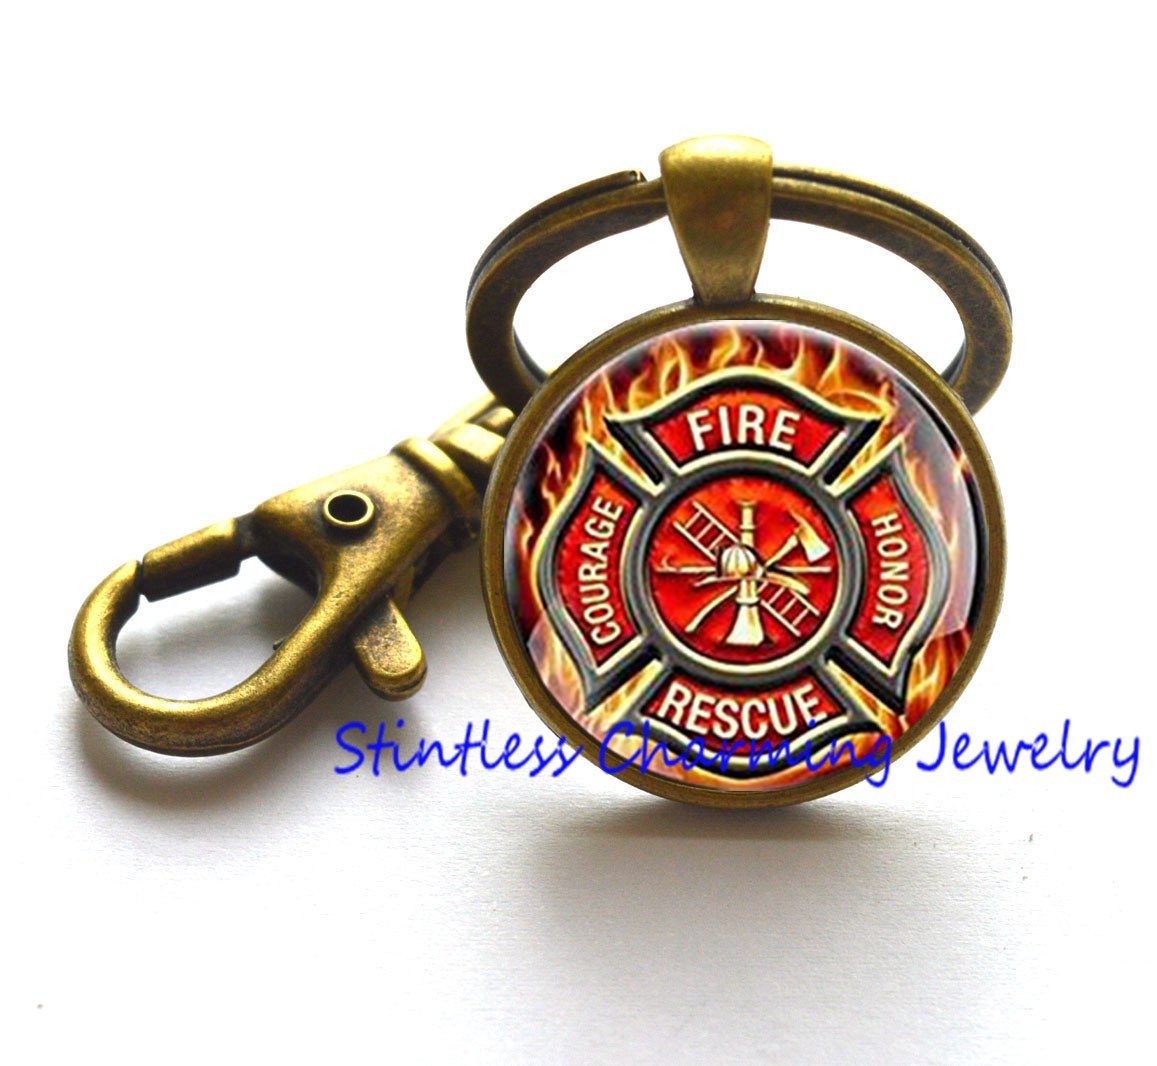 Retro Charming Fashion Fire Fighter Keychain Women Men Gift ,Fire Fighter Keychain Retro Gift,Unique Gift,religious Keychain stintless charming Jewelry